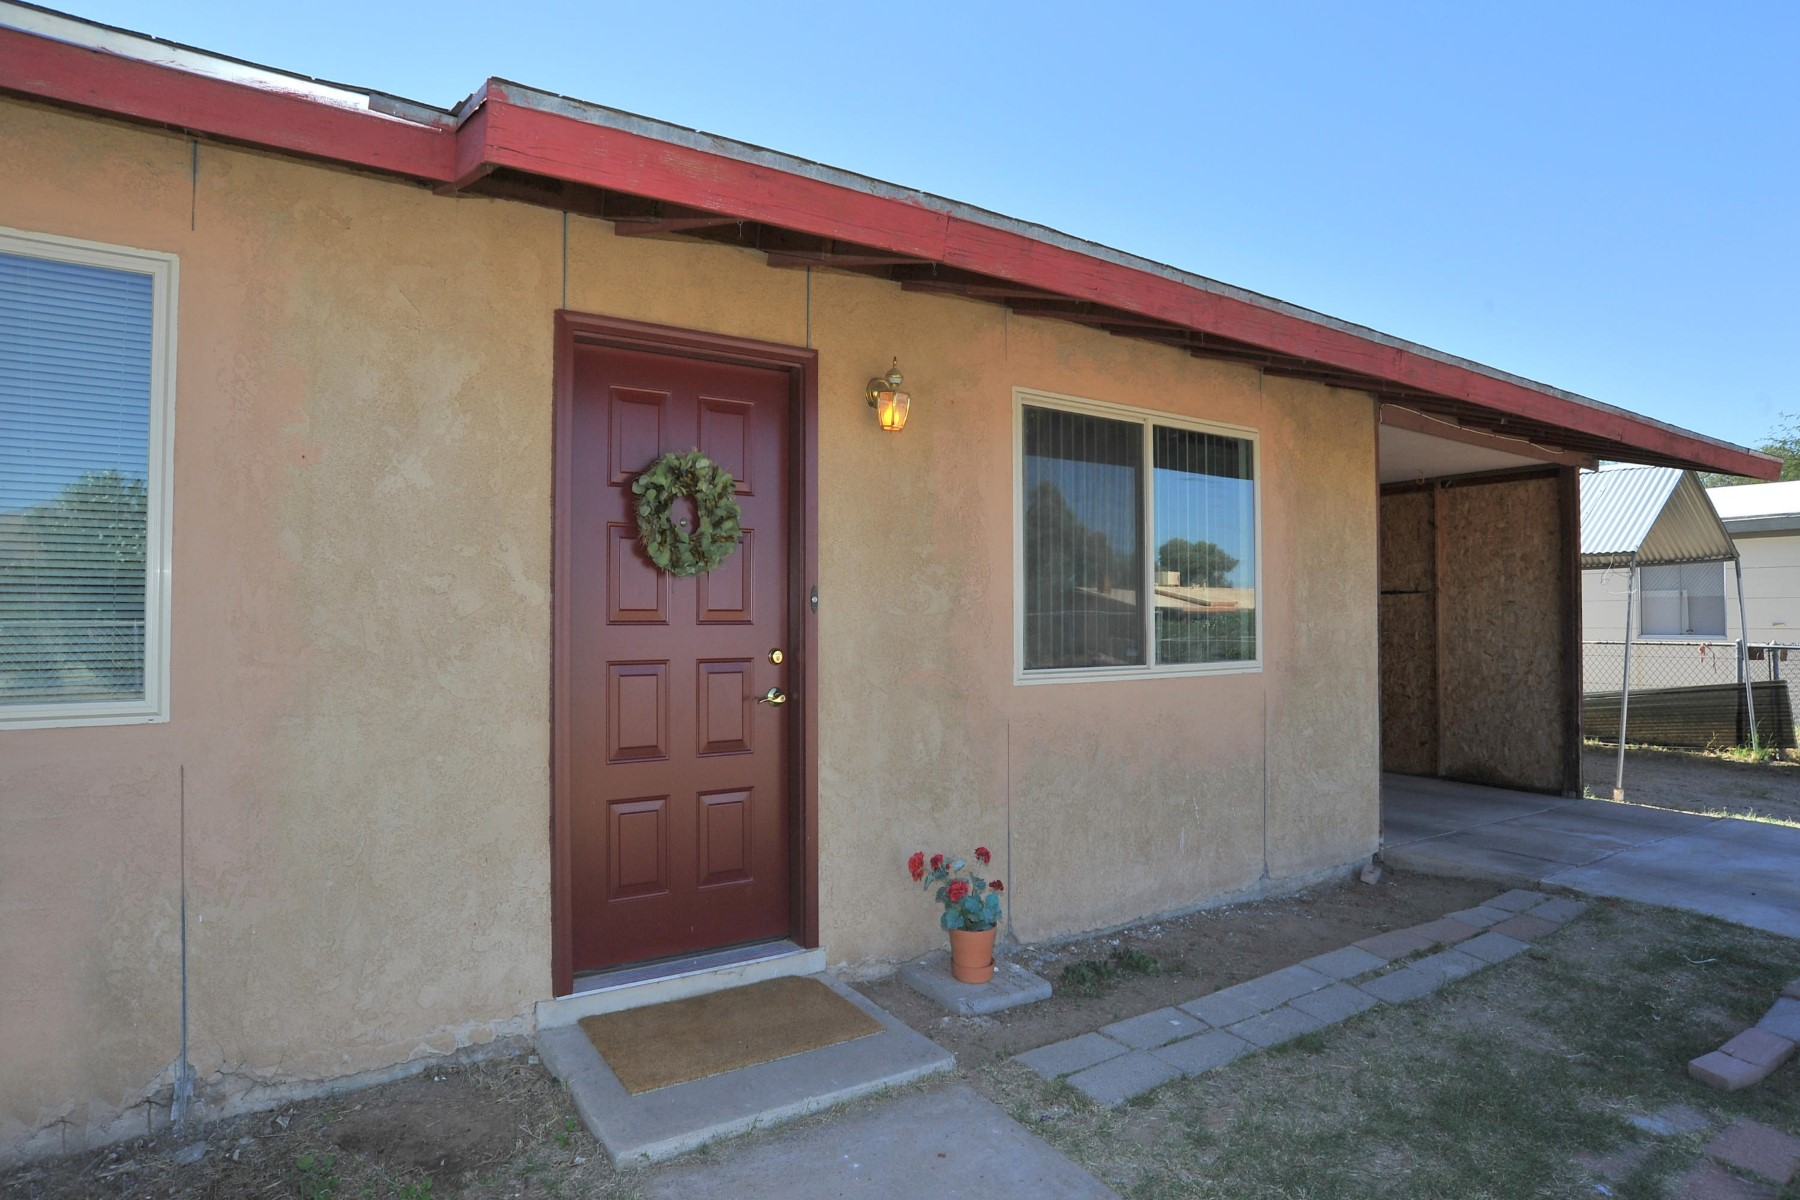 Single Family Home for Sale at Darling single level home 5352 E 32nd Street Tucson, Arizona, 85711 United States